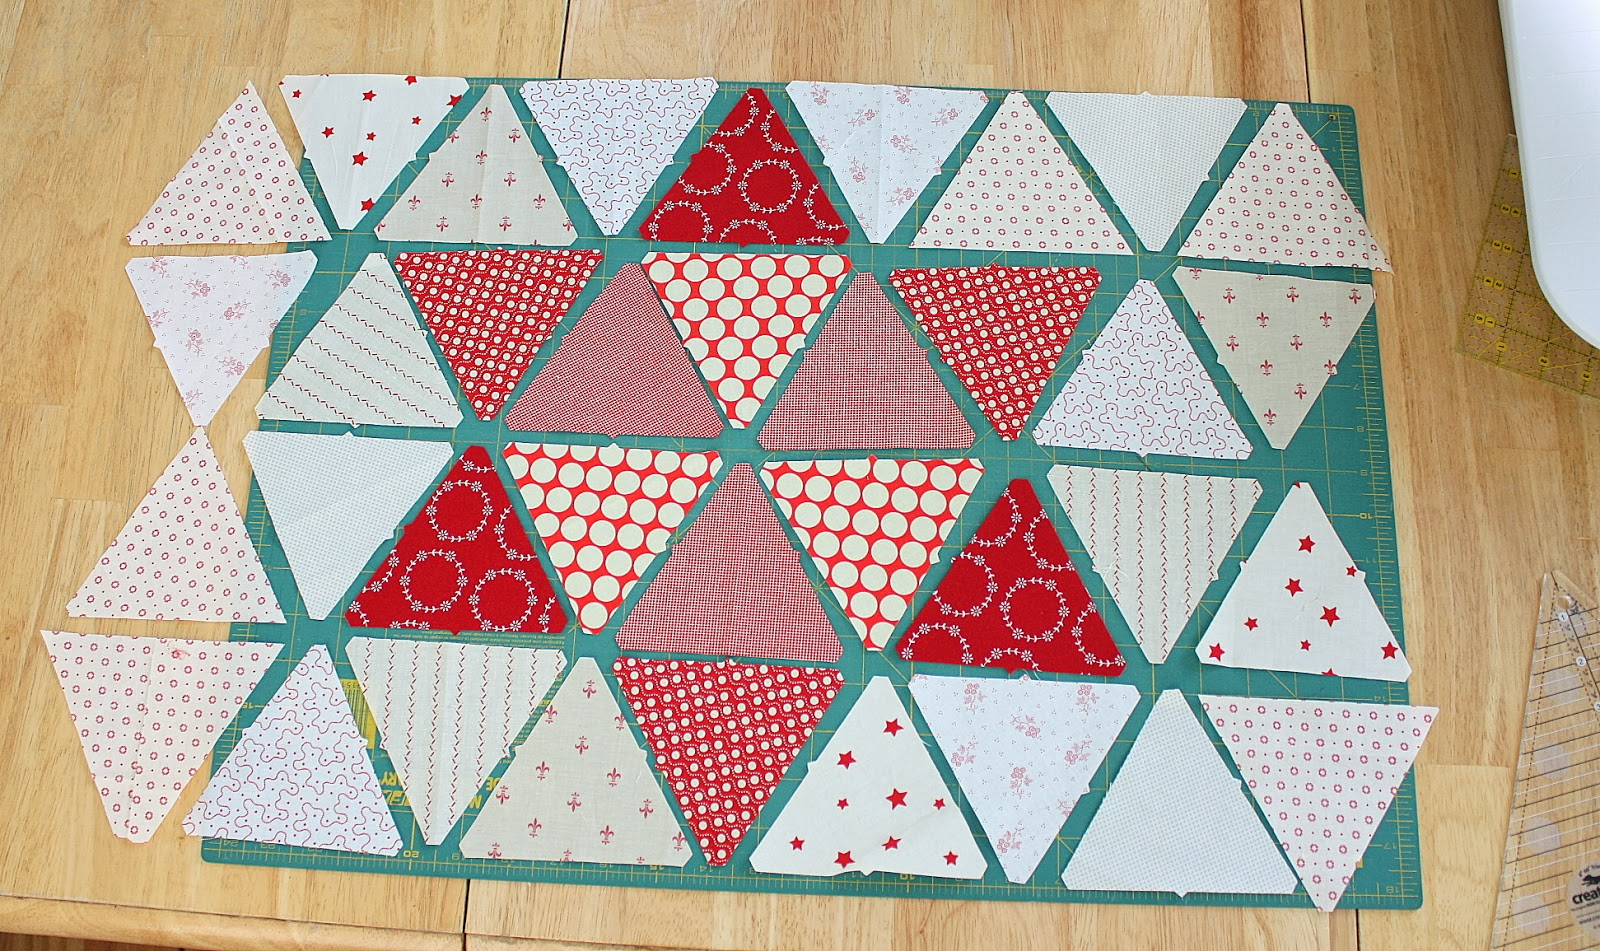 Quilt Designs With Triangles : Triangle star quilt block tutorial - Diary of a Quilter - a quilt blog